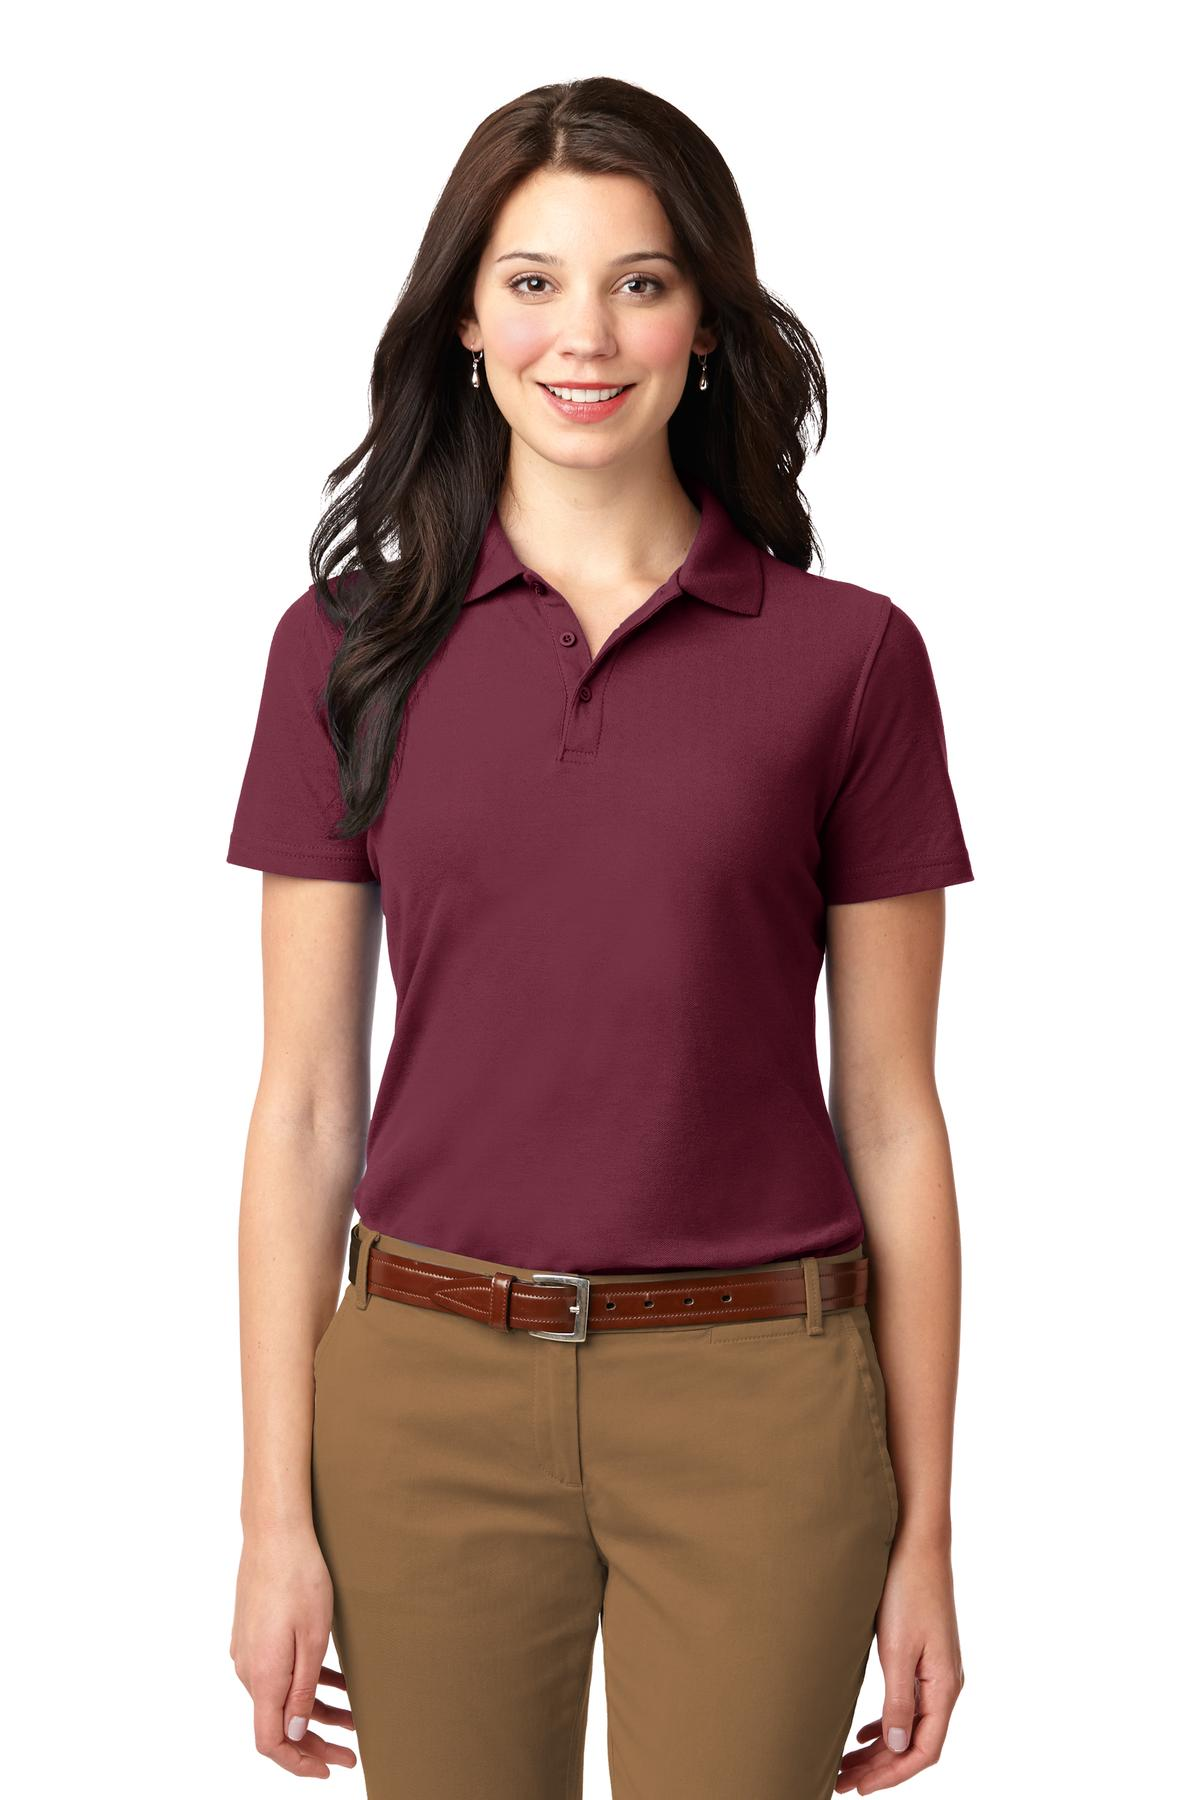 Lime Port Authority Ladies Silk Touch Performance Polo.